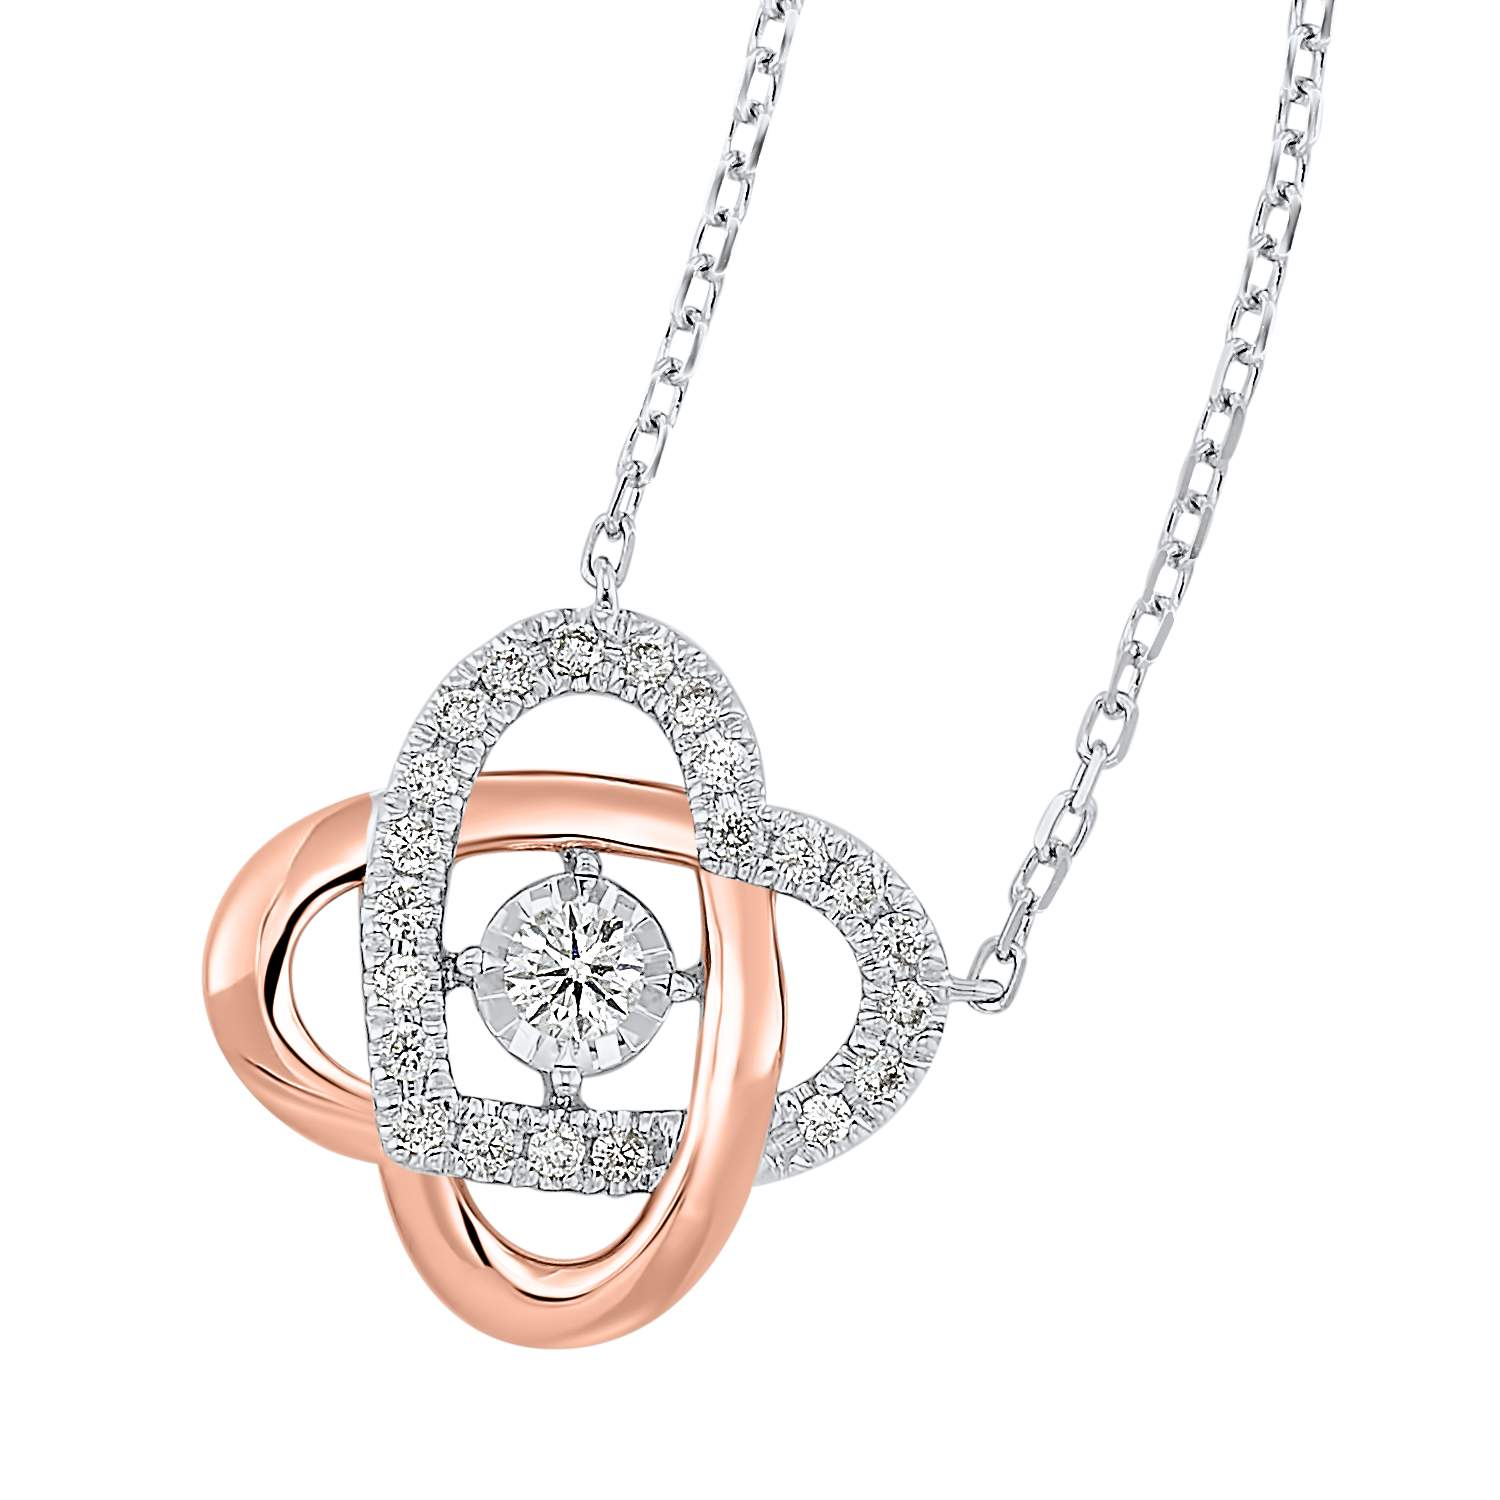 Love's Crossing Diamond Necklace in 14K Two-Tone Gold (1/3 ct. tw.) Moseley Diamond Showcase Inc Columbia, SC